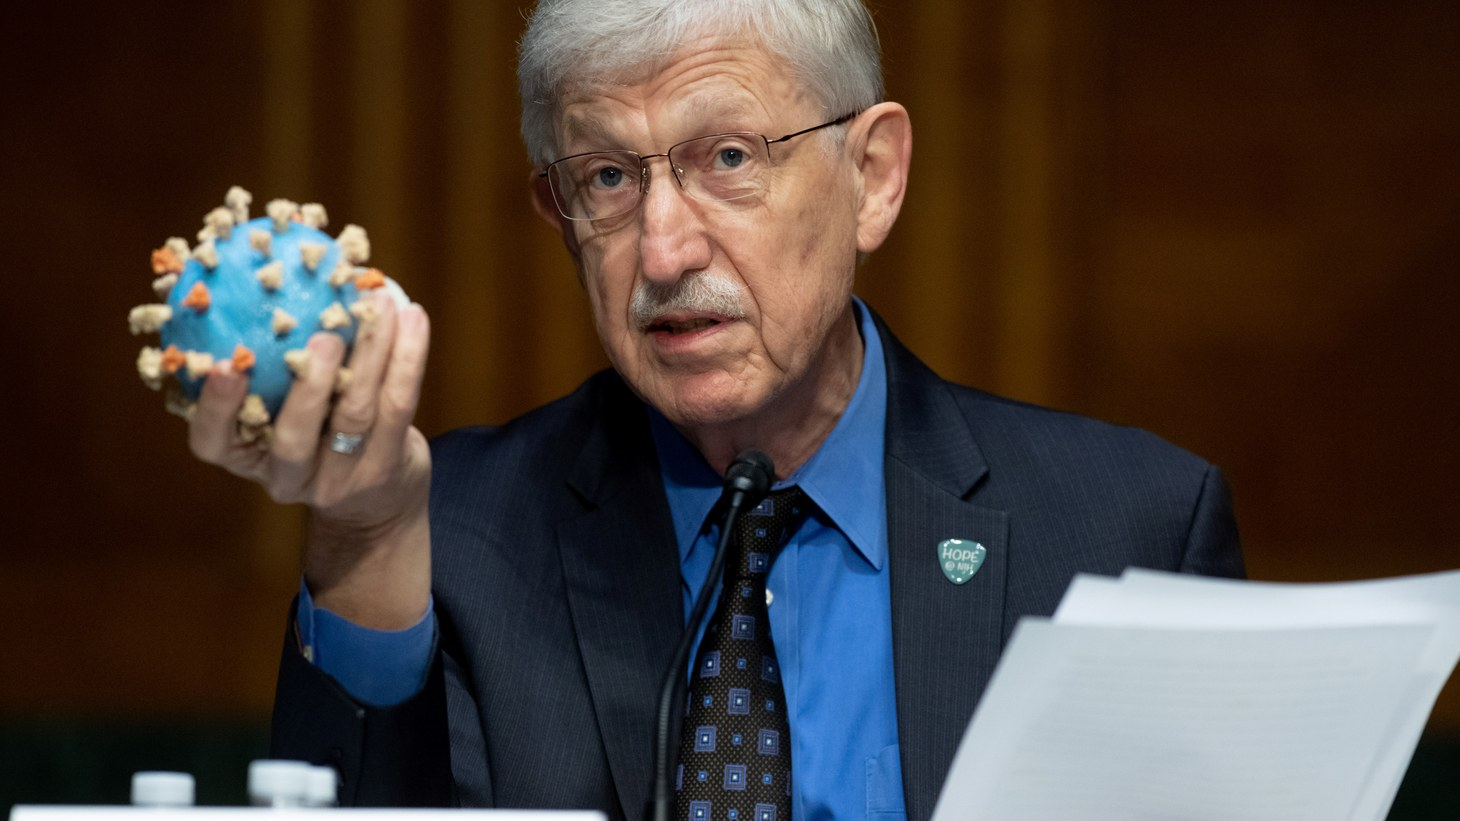 Dr. Francis Collins, Director of the National Institutes of Health (NIH), holds up a model of SARS-CoV-2, known as the novel coronavirus, during a U.S. Senate Appropriations Subcommittee Hearing on the plan to research, manufacture, and distribute a coronavirus vaccine, known as Operation Warp Speed, on Capitol Hill in Washington, D.C, U.S., July 2, 2020.